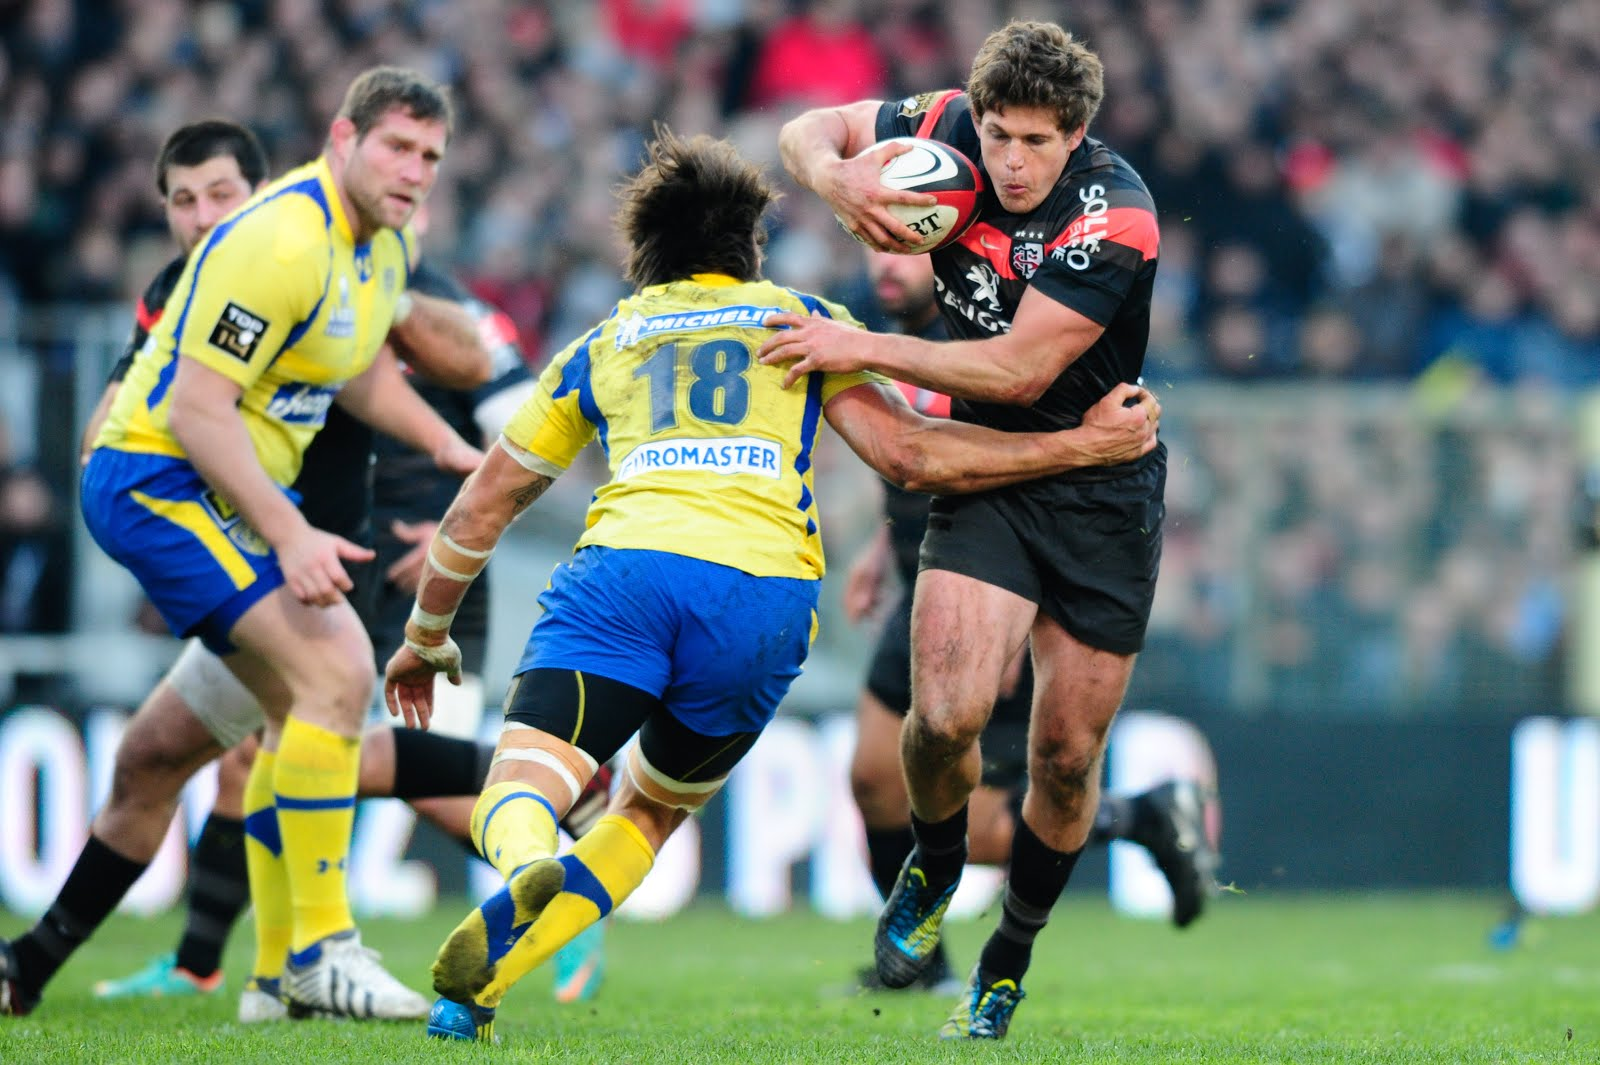 Match Rugby ASM Clermont vs Oyonnax en direct live streaming